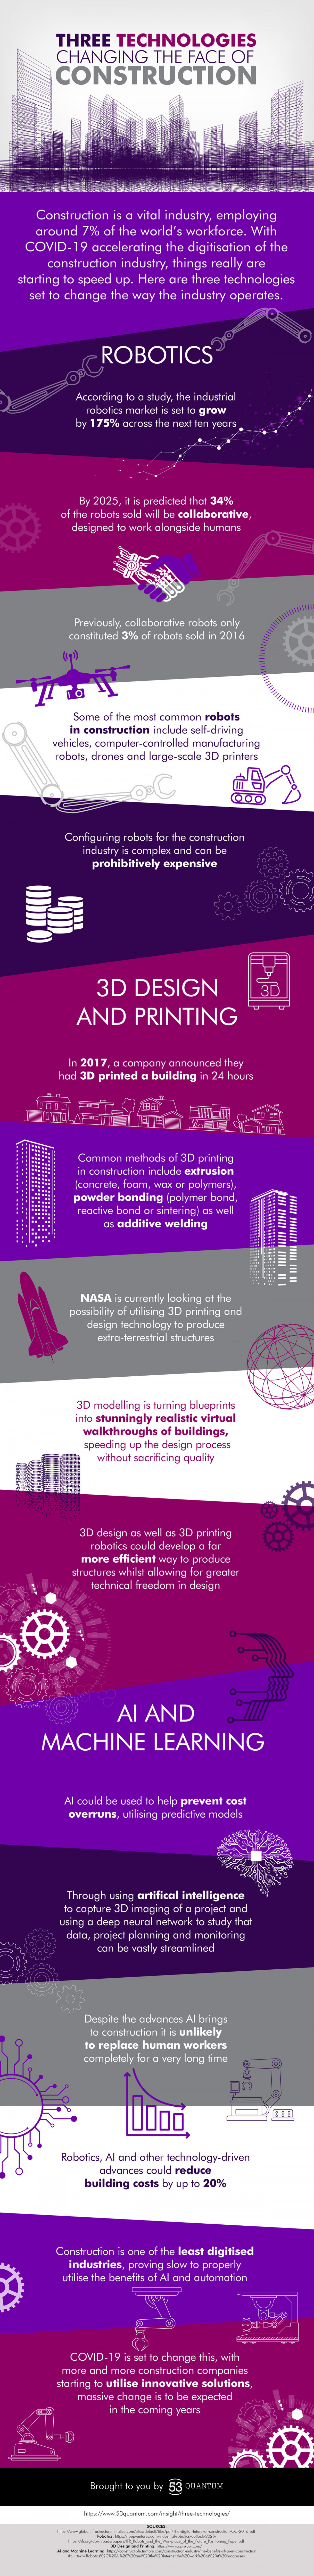 Three Technologies Changing the Face of Construction Infographic